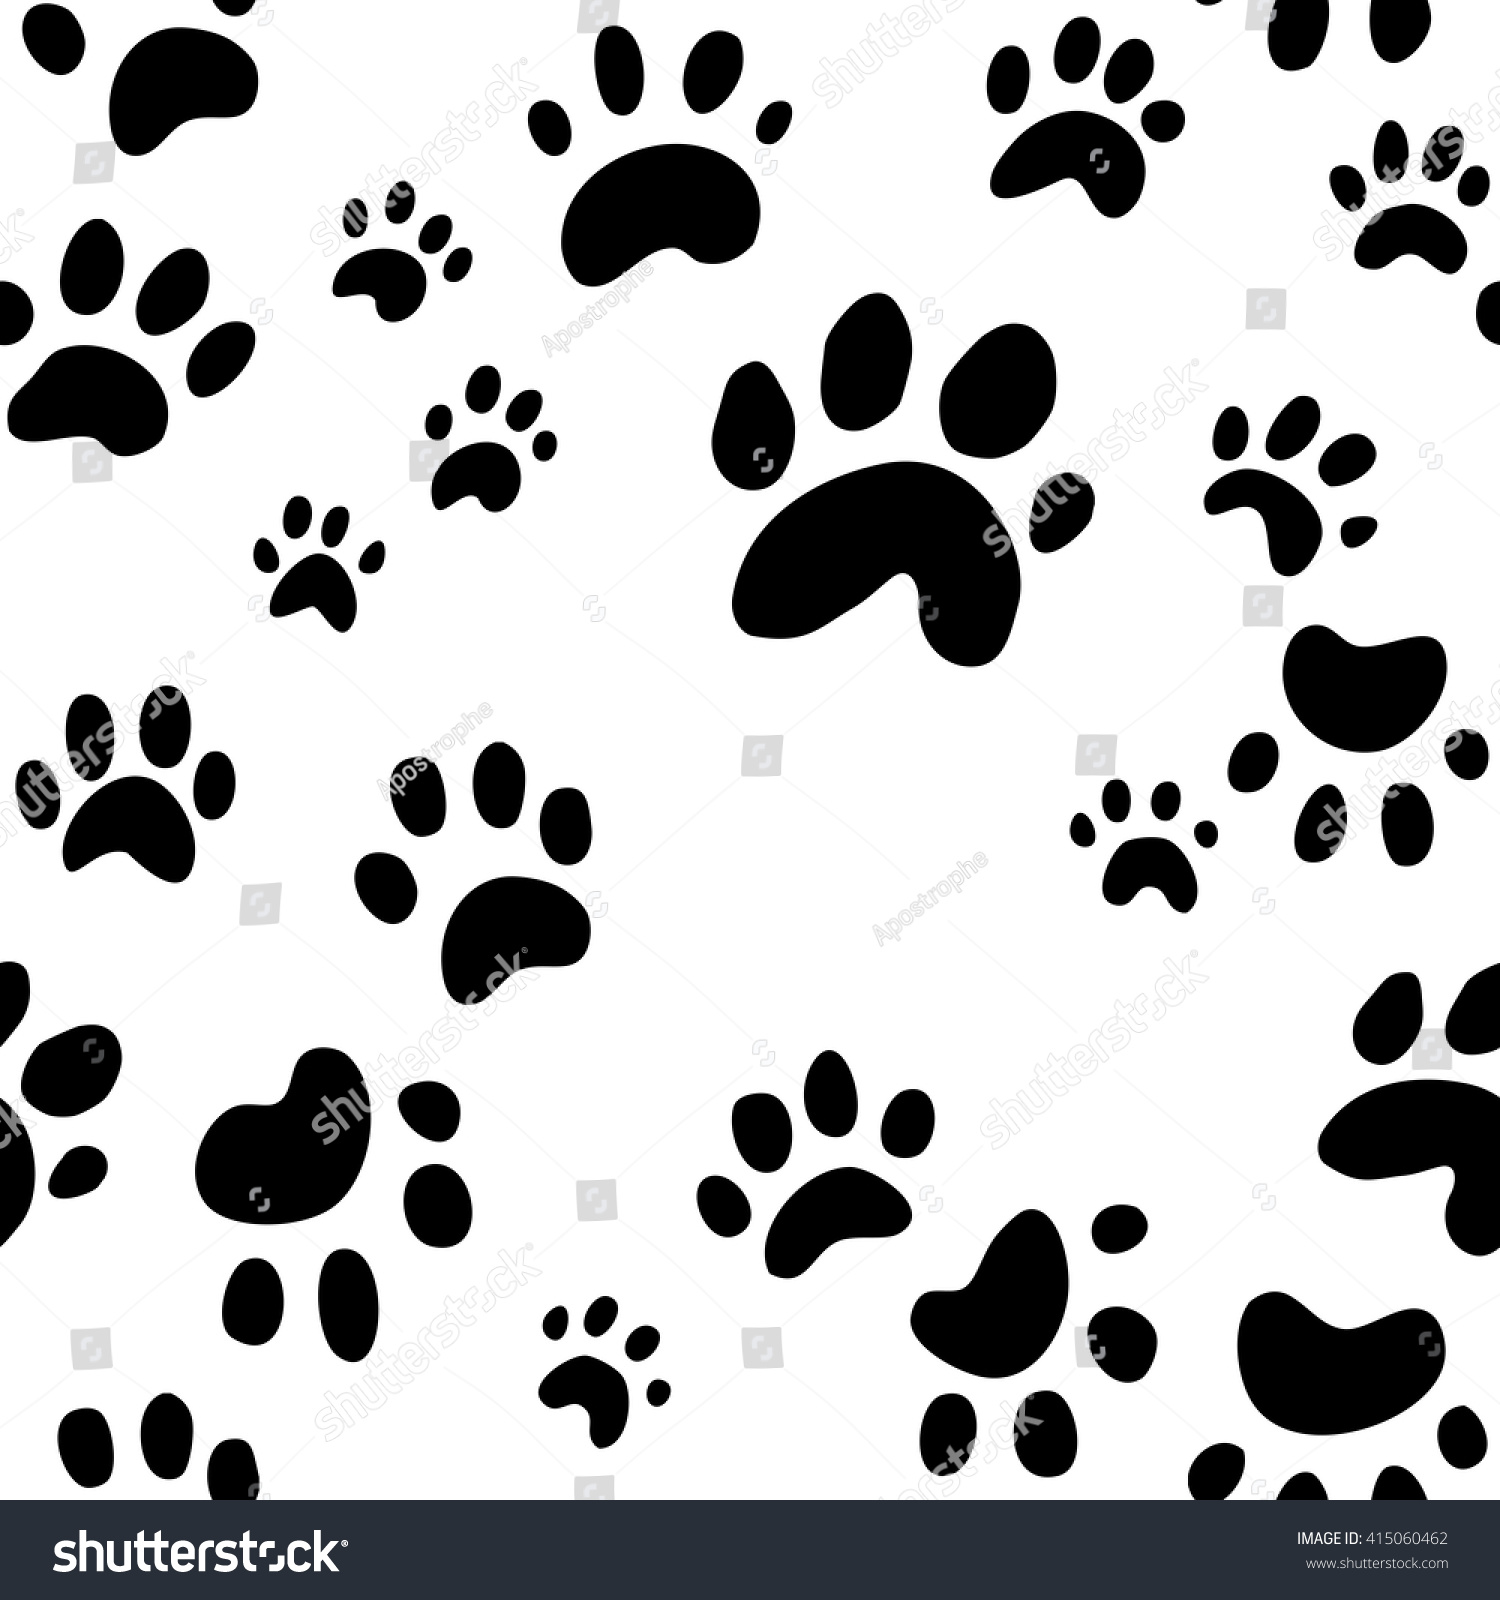 Dog Paw Print Seamless Wallpaper Background Stock Vector